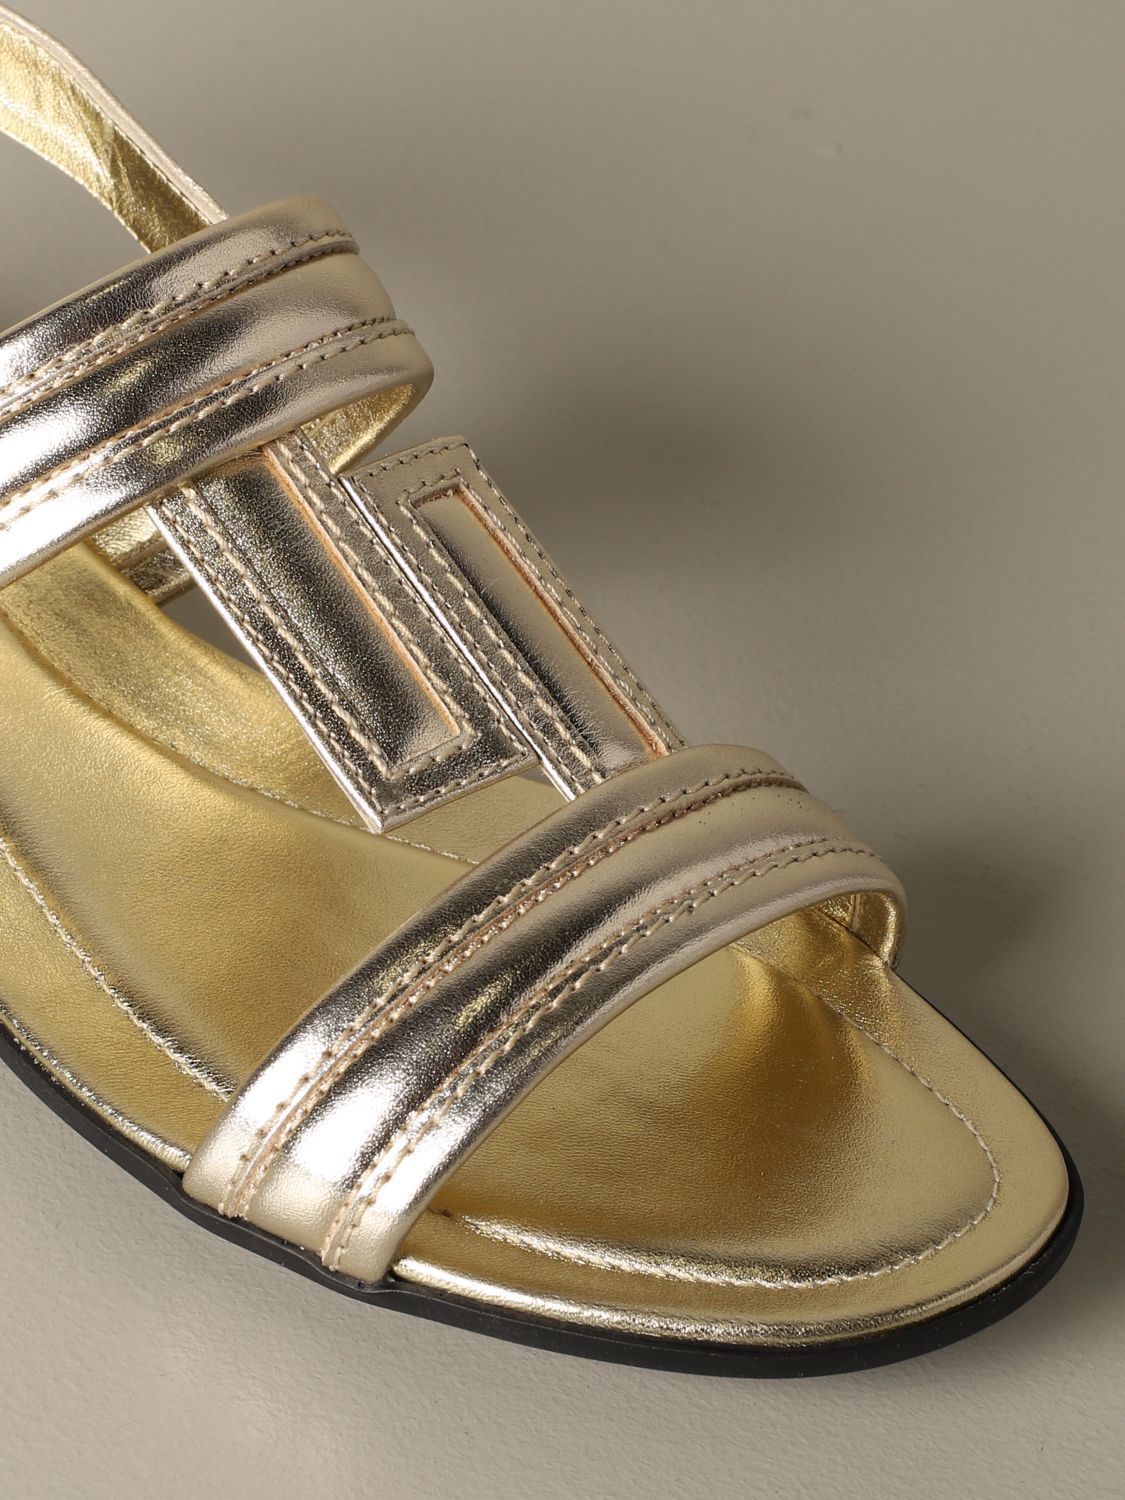 Flat sandals Tods: Shoes women Tod's gold 3